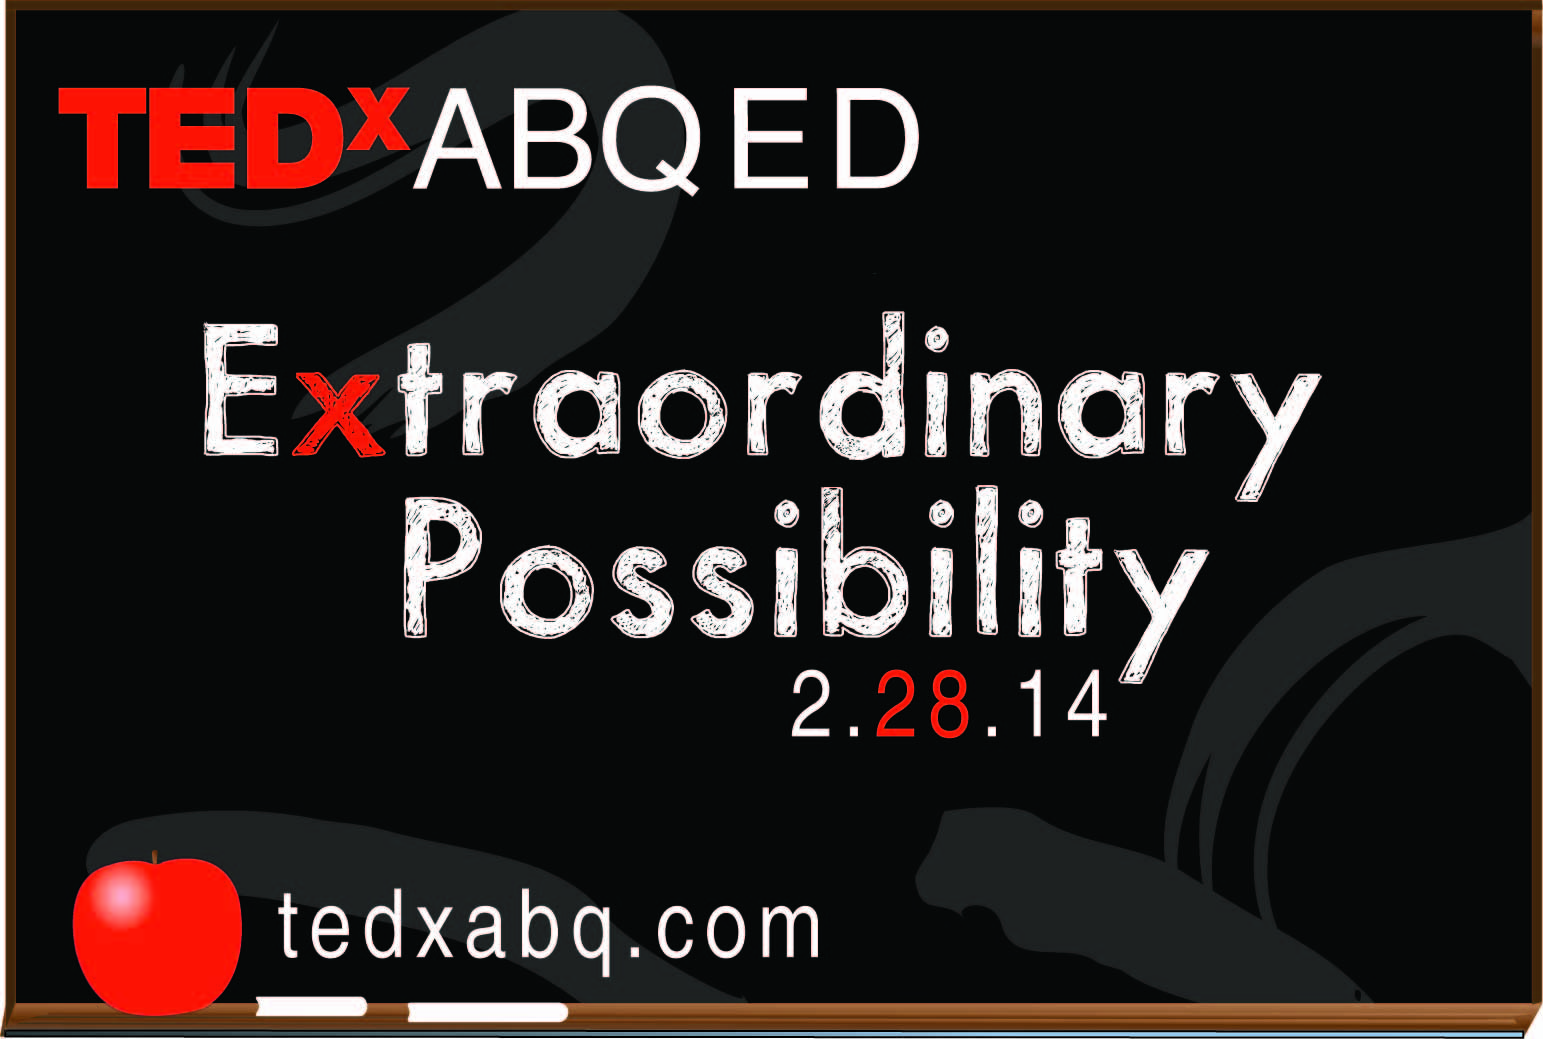 TEDxABQ Education - Extraordinary Possibility